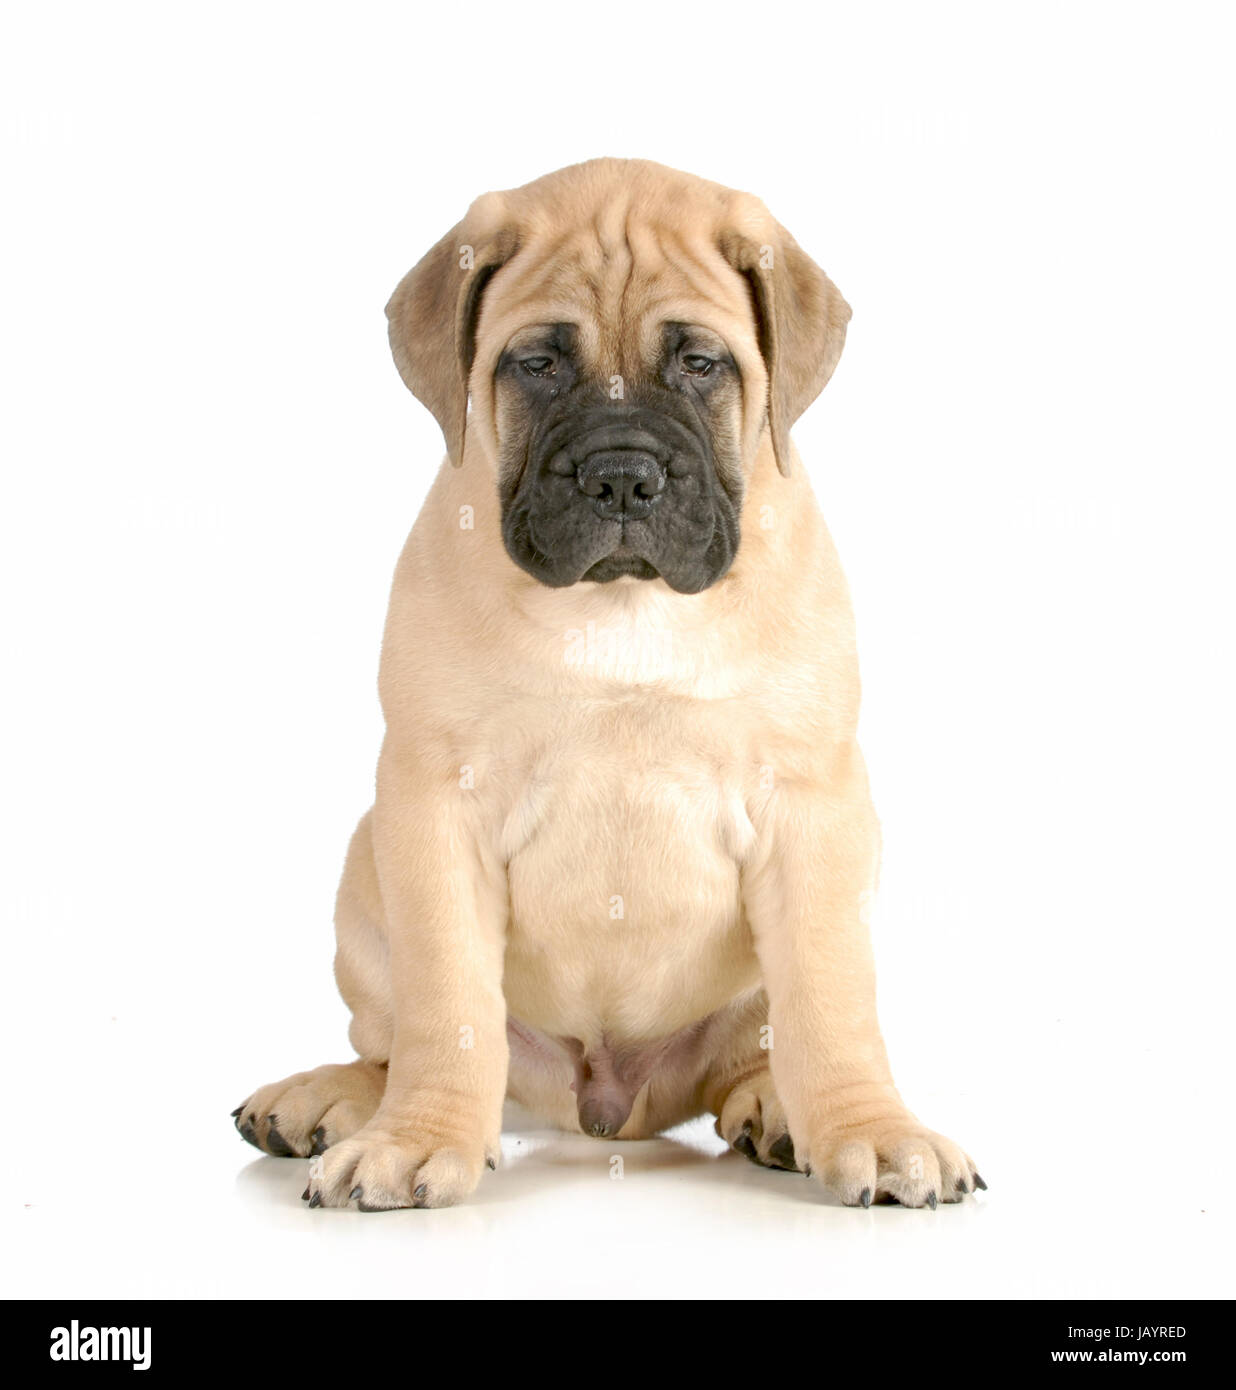 bullmastiff puppy sitting looking at viewer isolated on white background - 8 weeks old - Stock Image